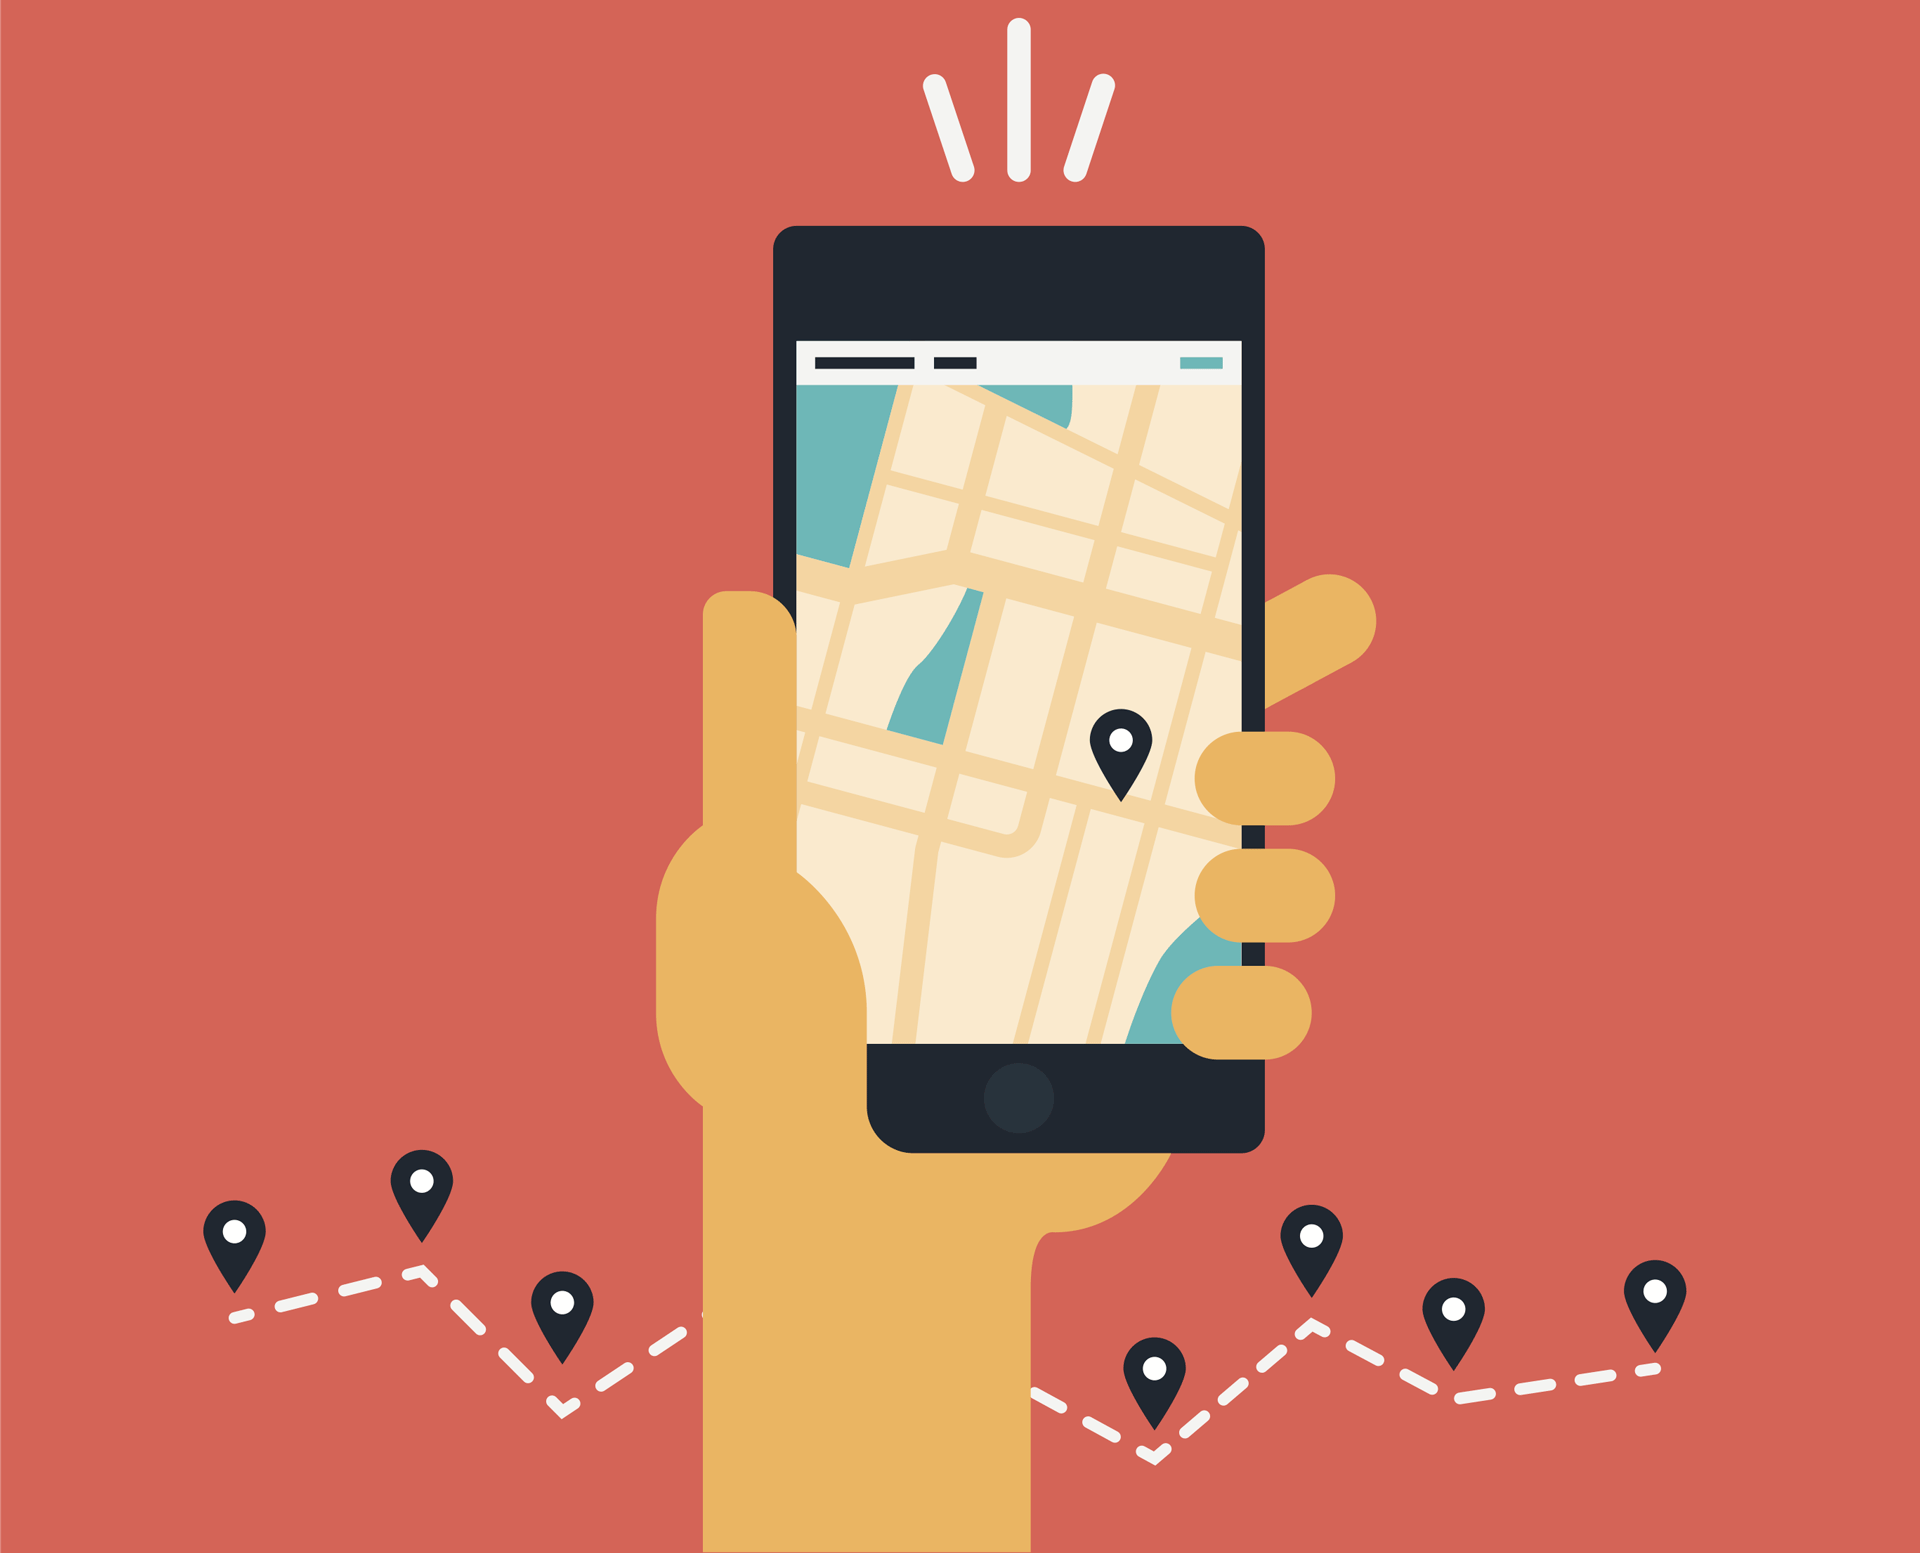 Three Easiest Ways to view someone's Location on iPhone